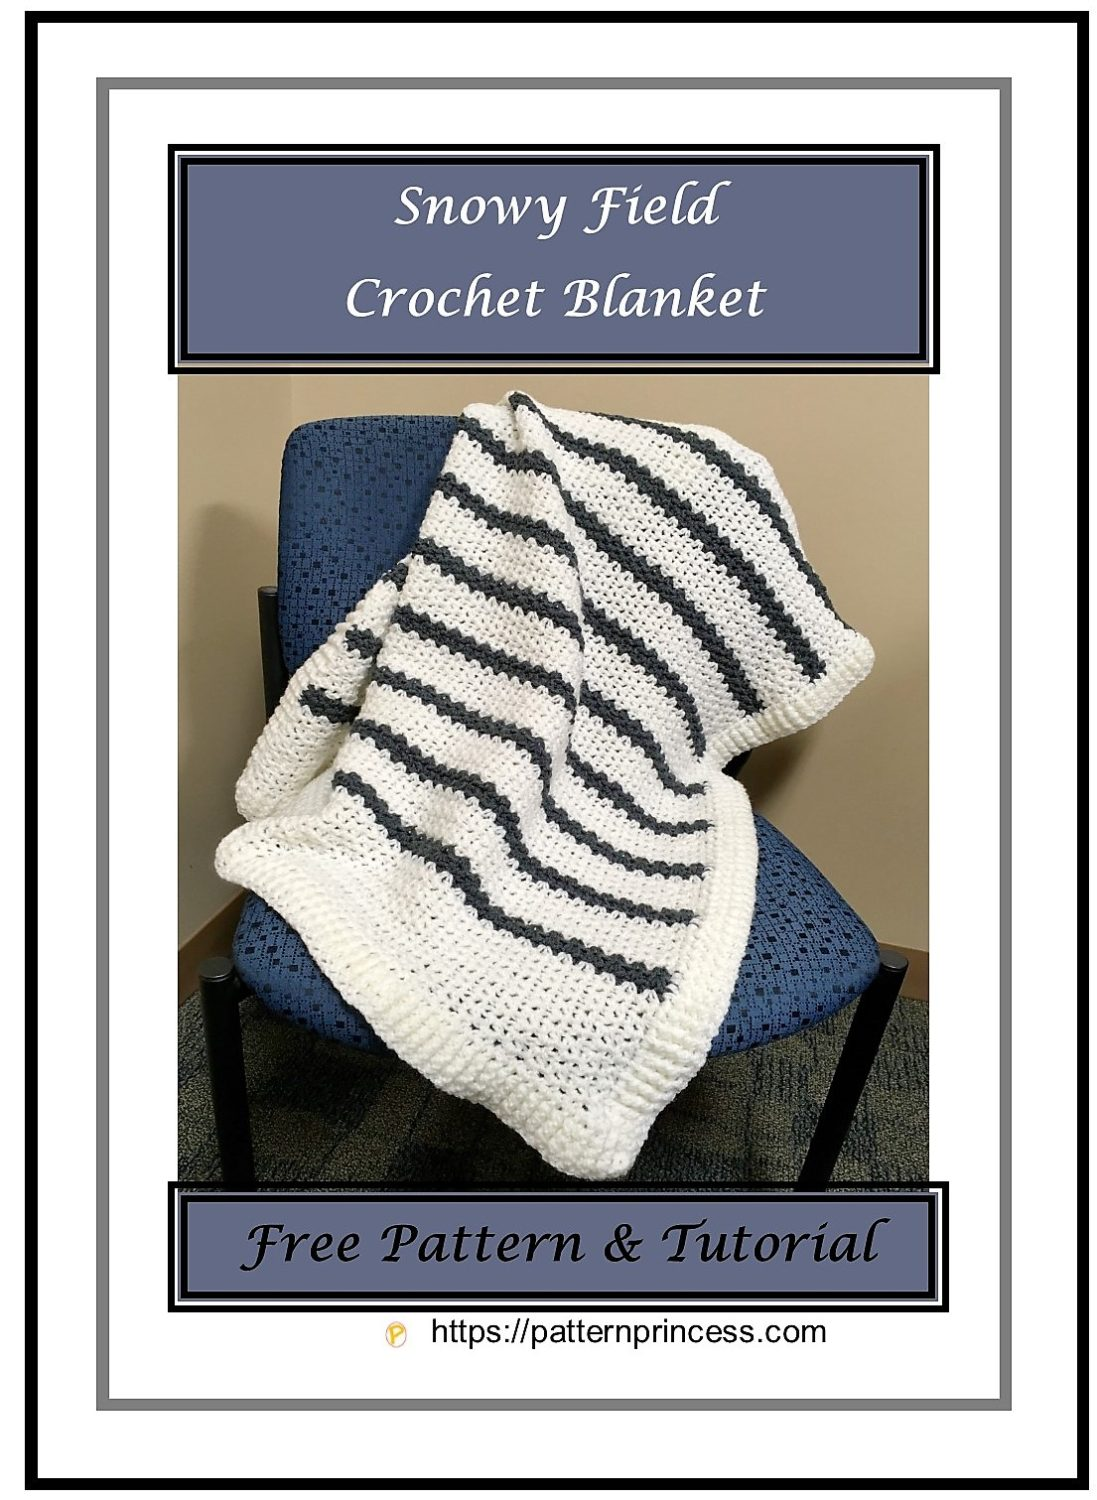 Snowy Field Crochet Blanket 1